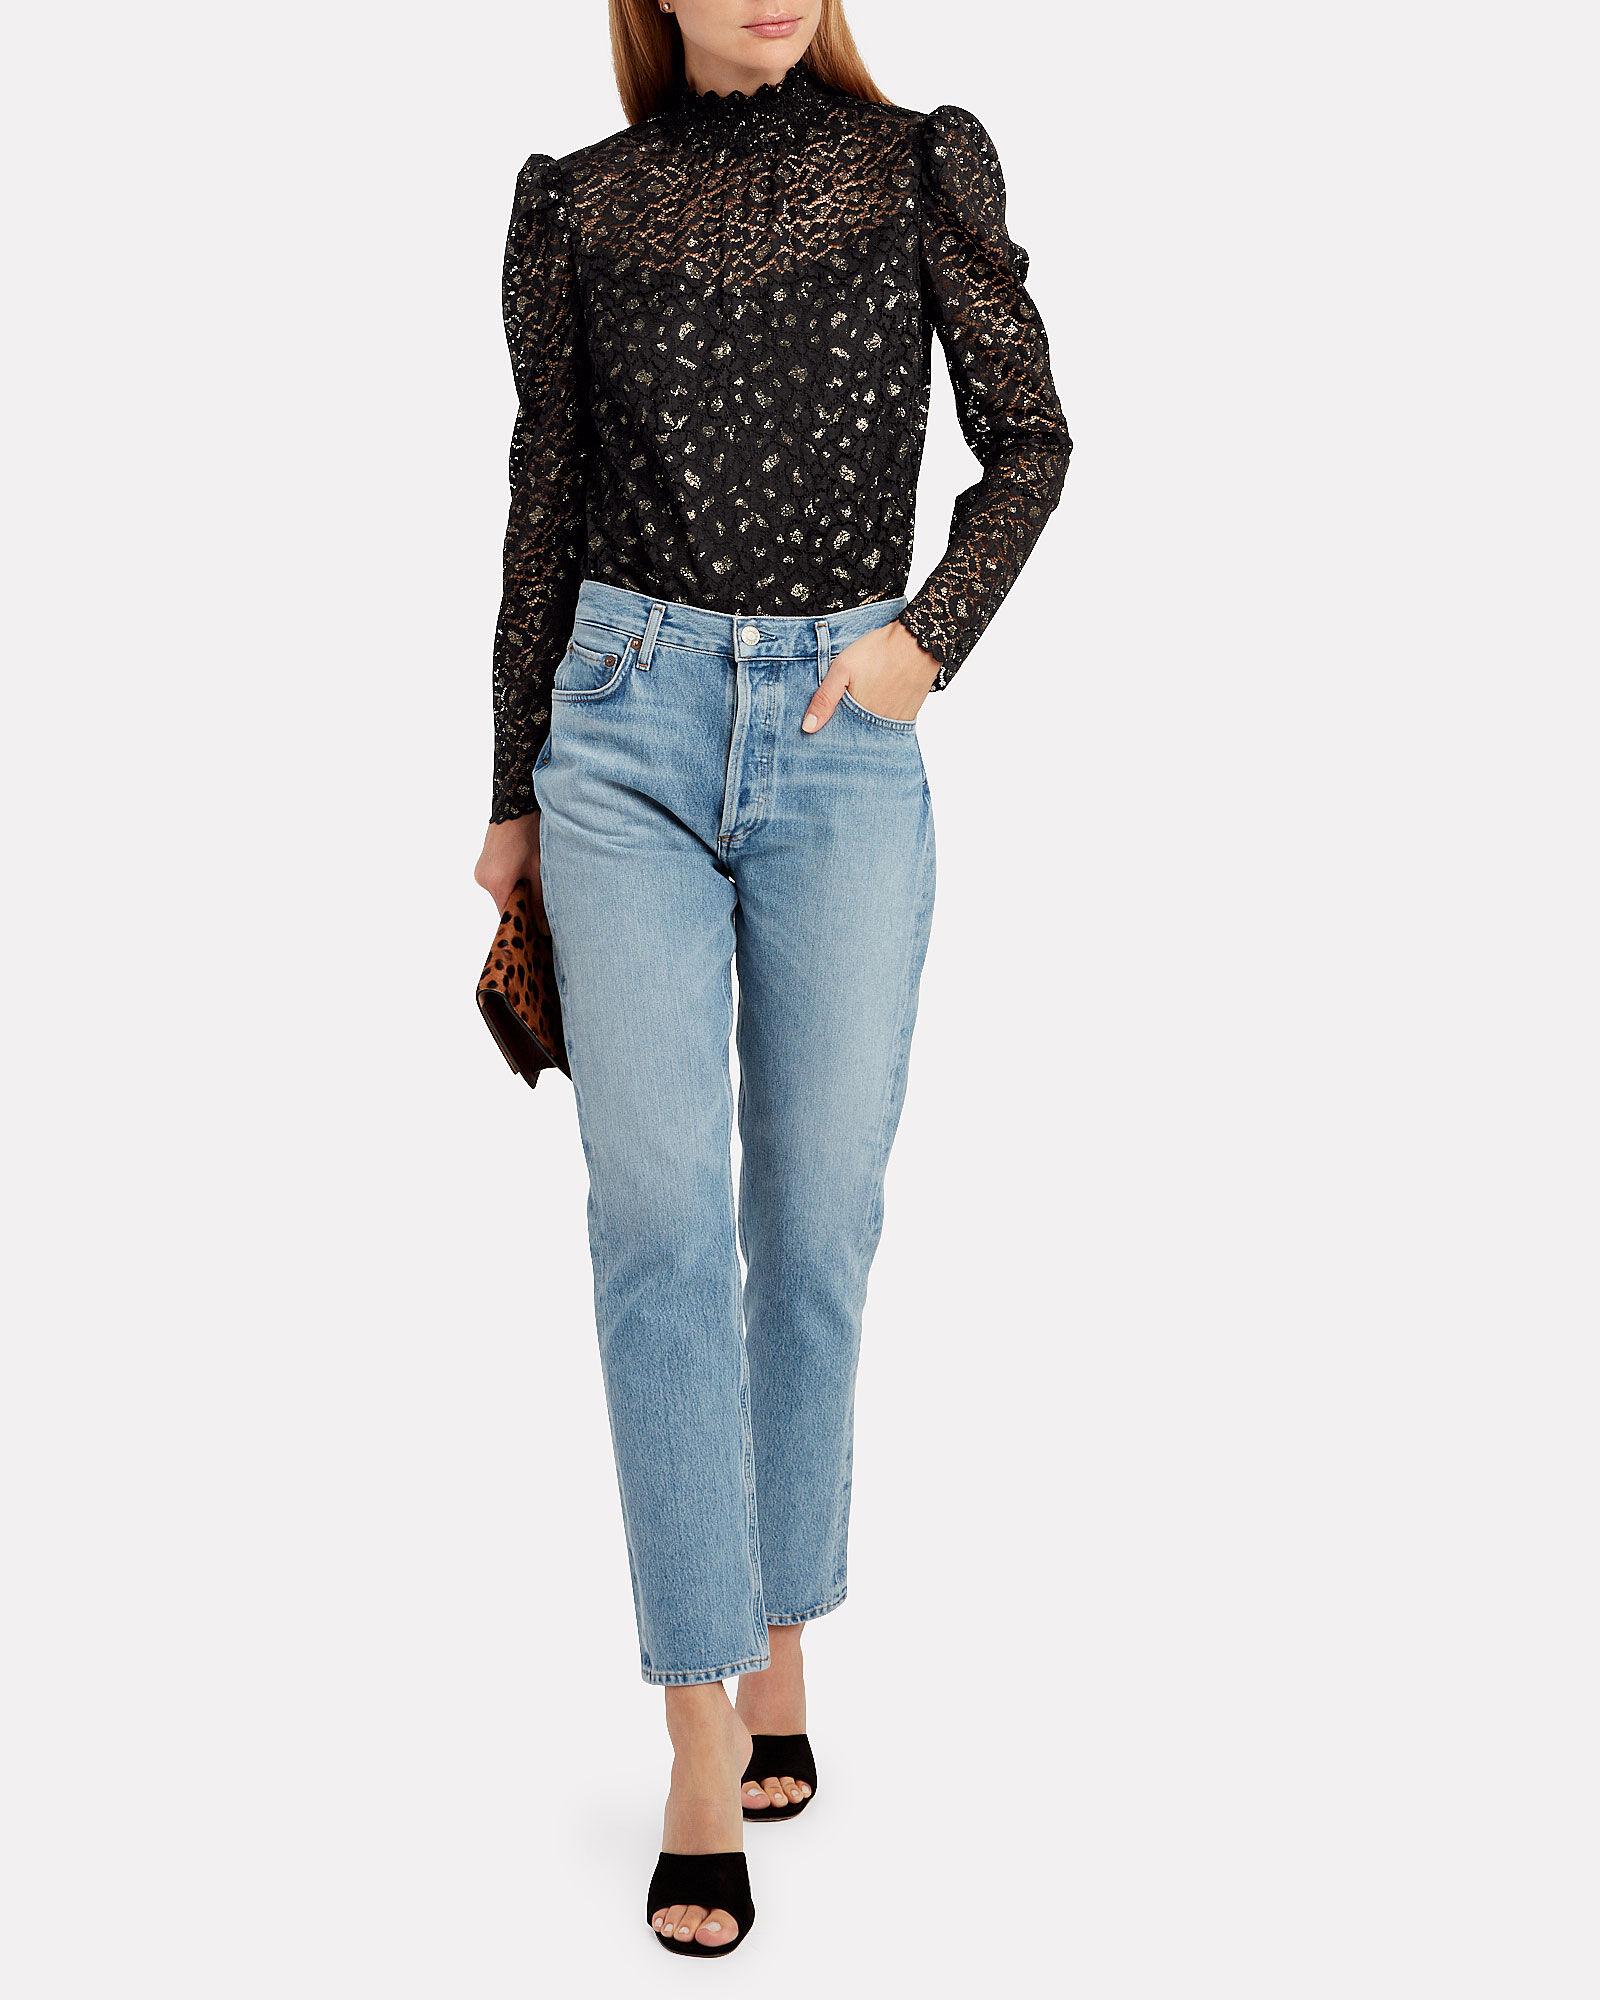 Annabelle Cheetah Lace Blouse, BLACK, hi-res